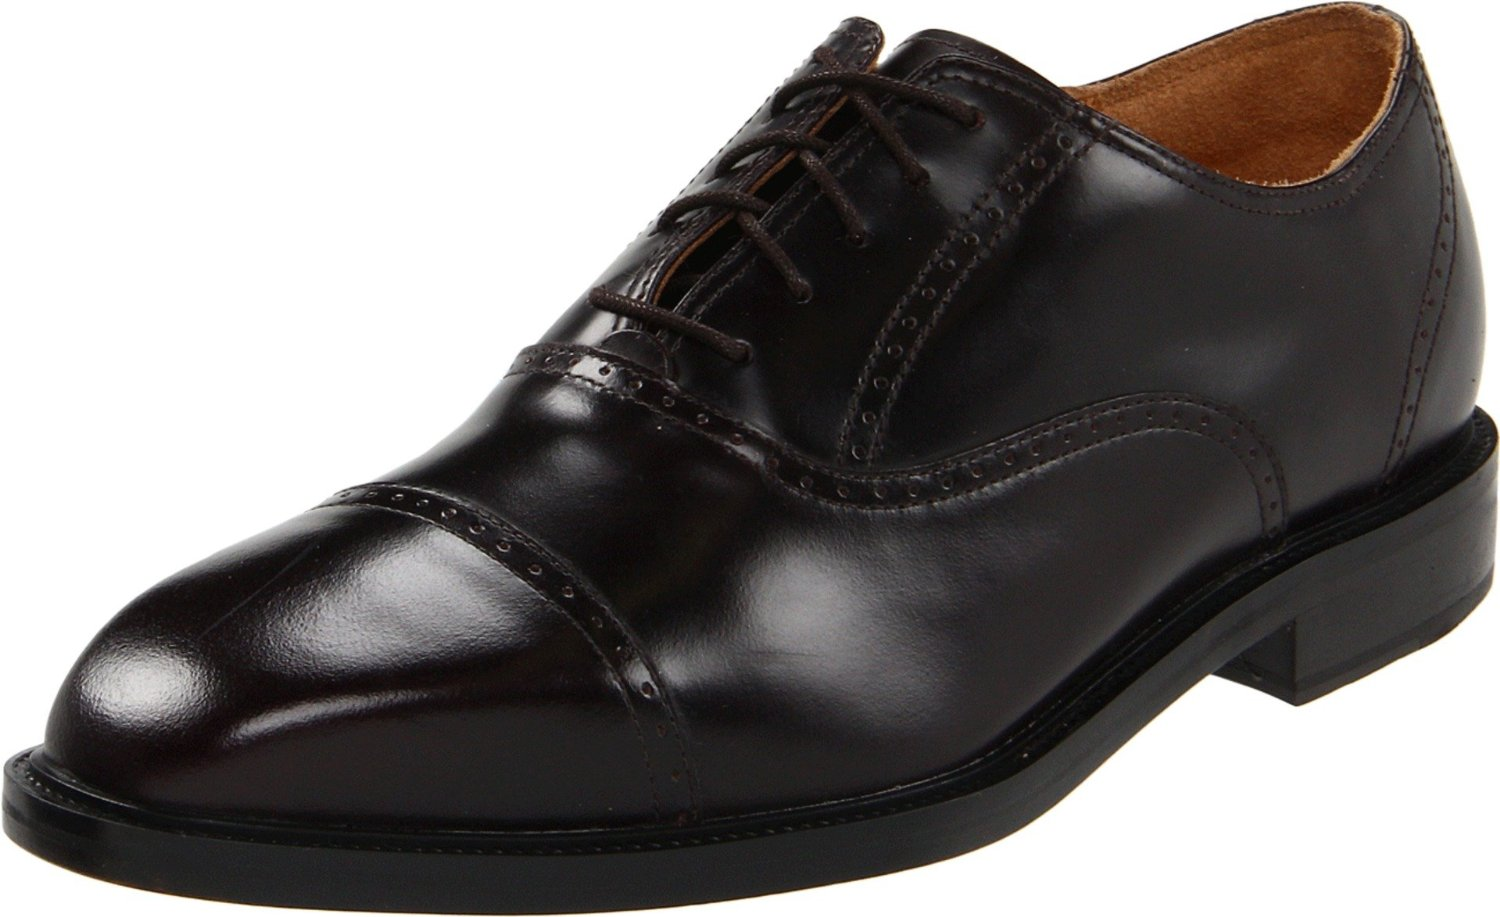 rockport-cordovan-rockport-mens-waitsfield-dress-shoe-product-1